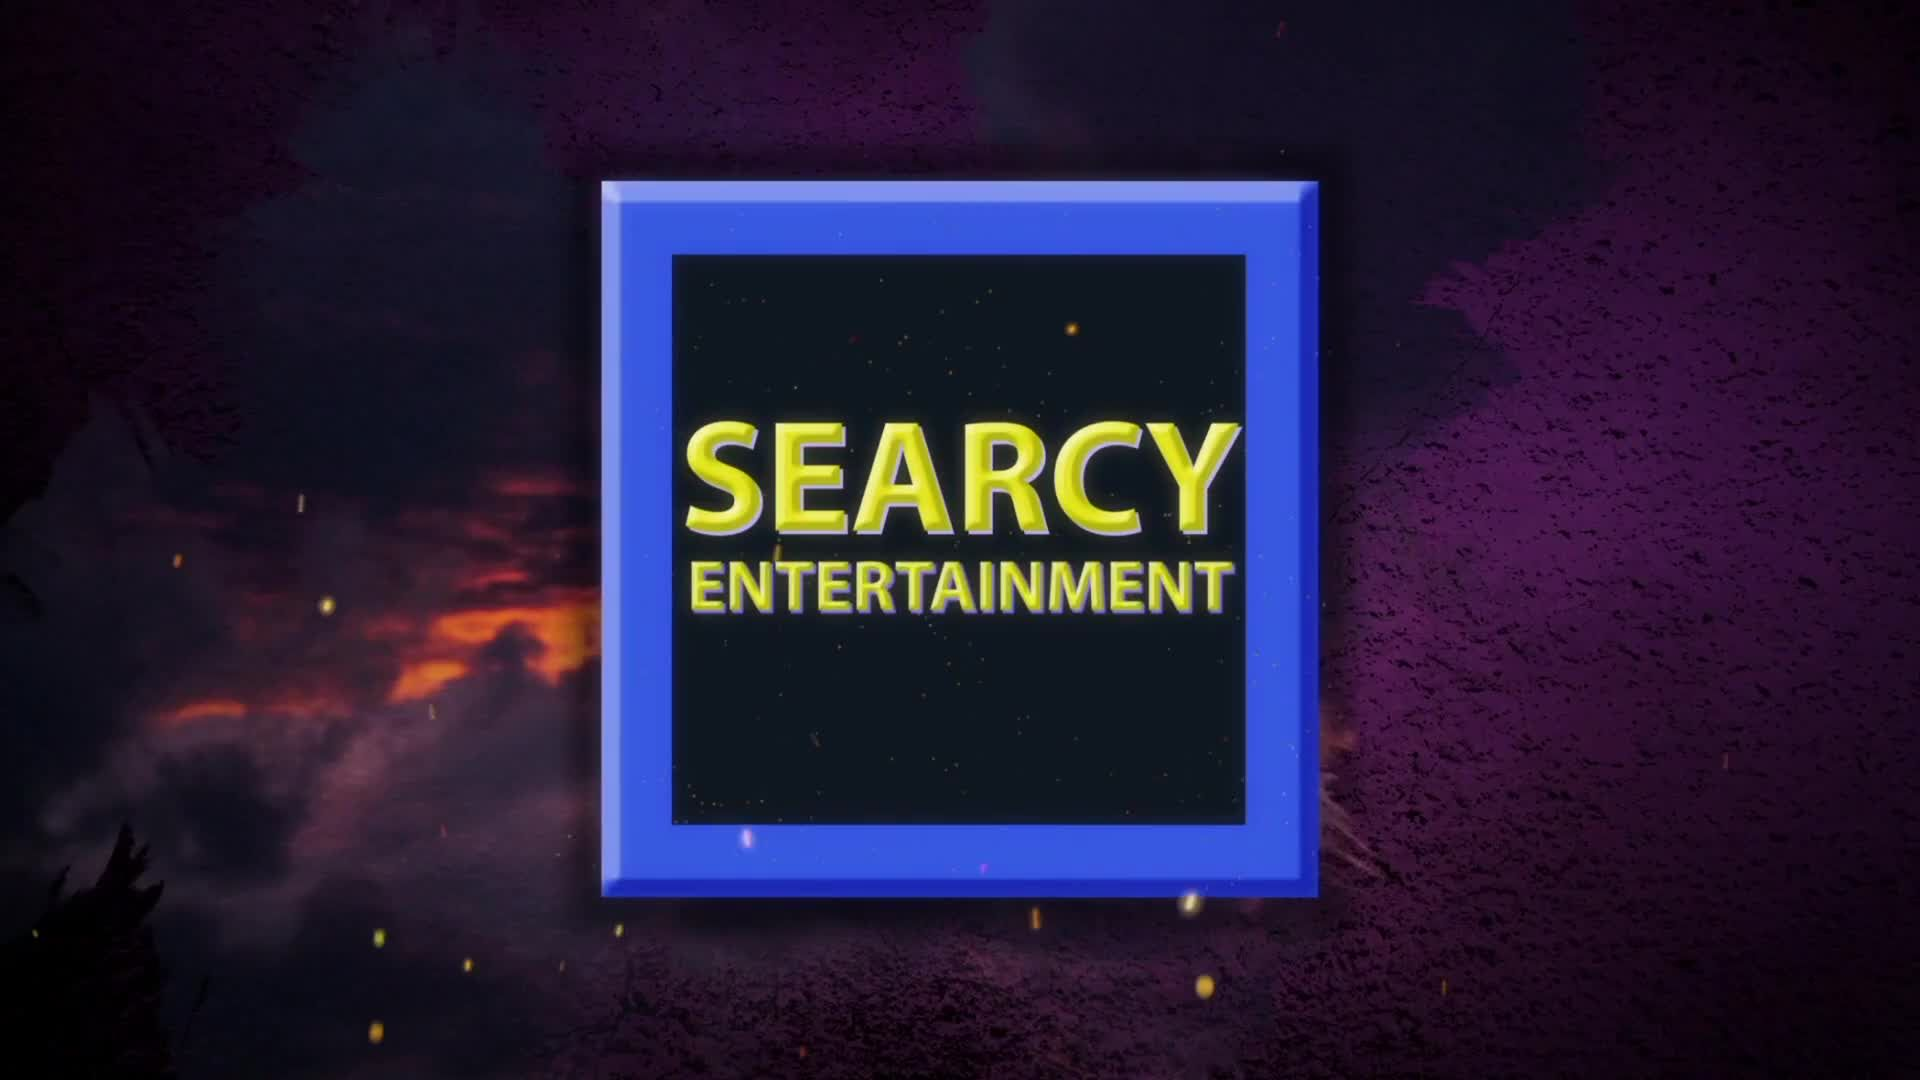 SEARCY ENTERTAINMENT-EPISODE ONE EXPERIENCE THE MUSIC WITH TIM SEARCY